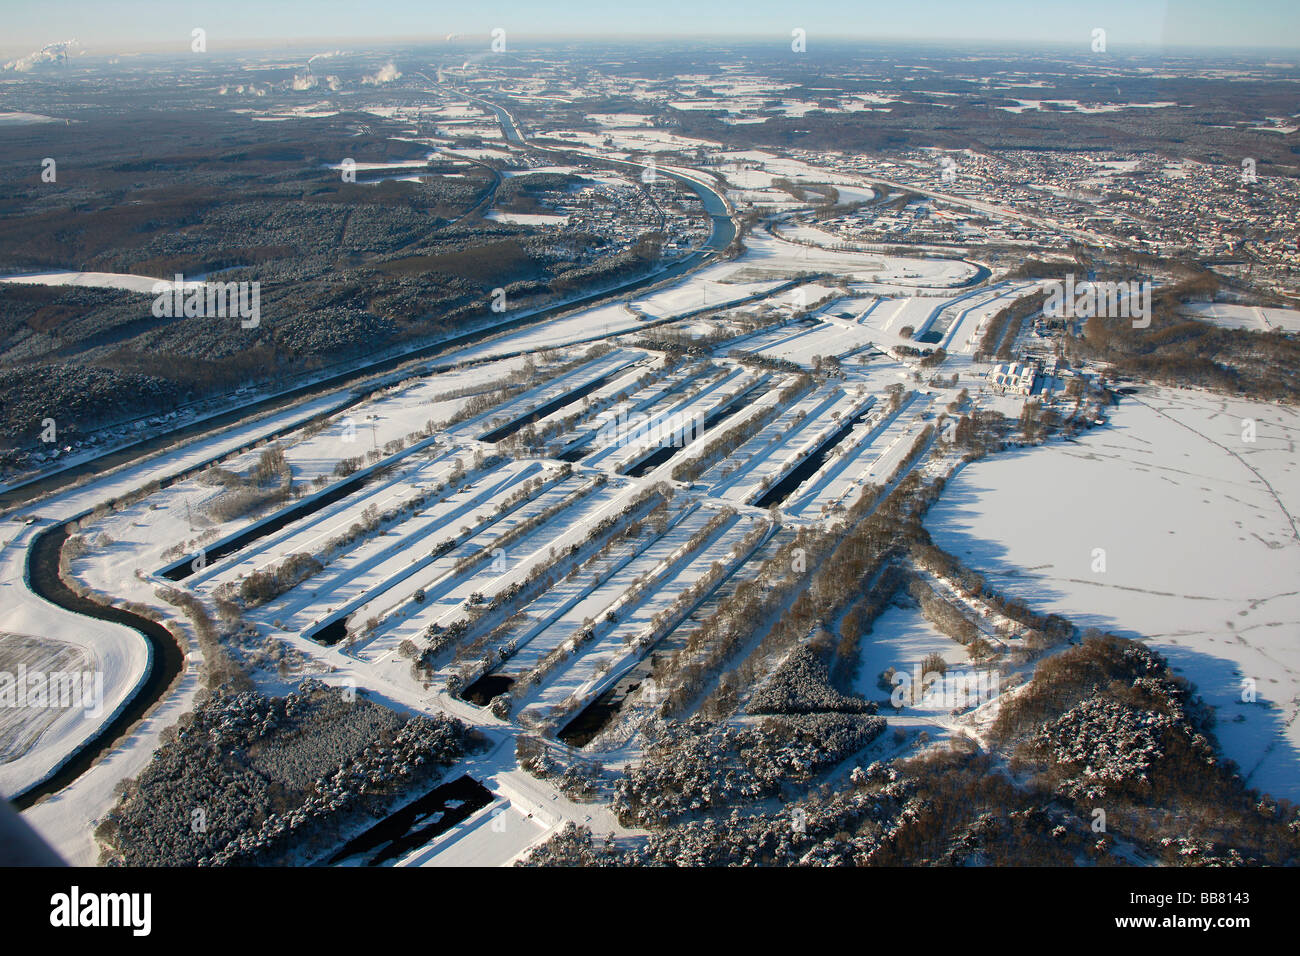 Aerial photo, Gelsenwerk sewage treatment plant, Haltern storage lake, snow, Haltern, Ruhr Area, North Rhine-Westphalia, - Stock Image